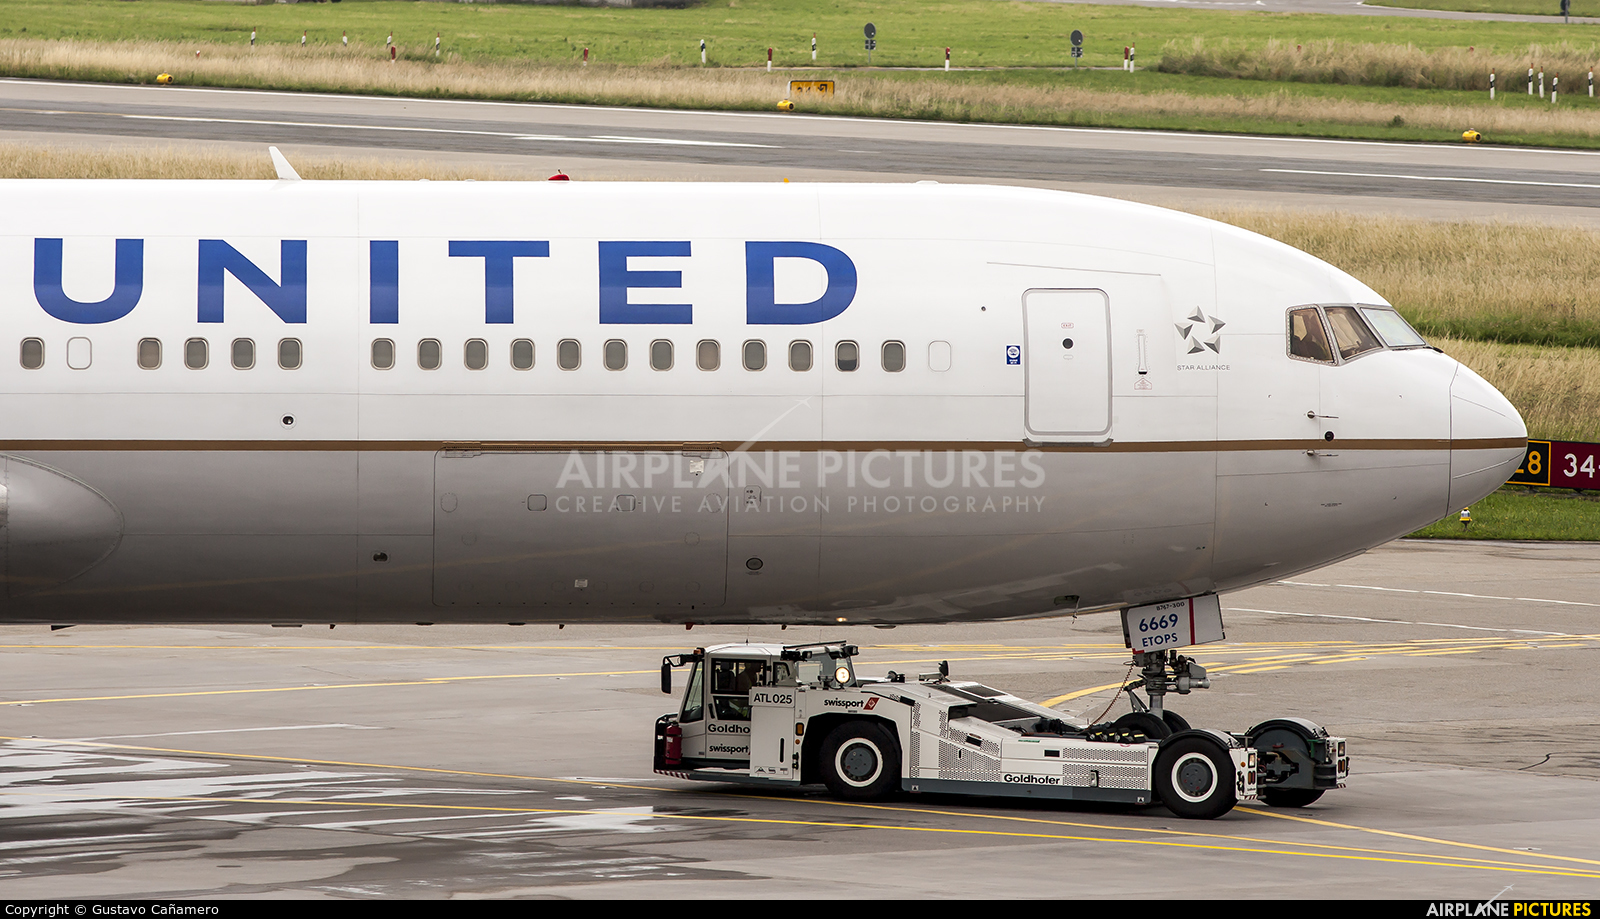 United Airlines N669UA aircraft at Zurich